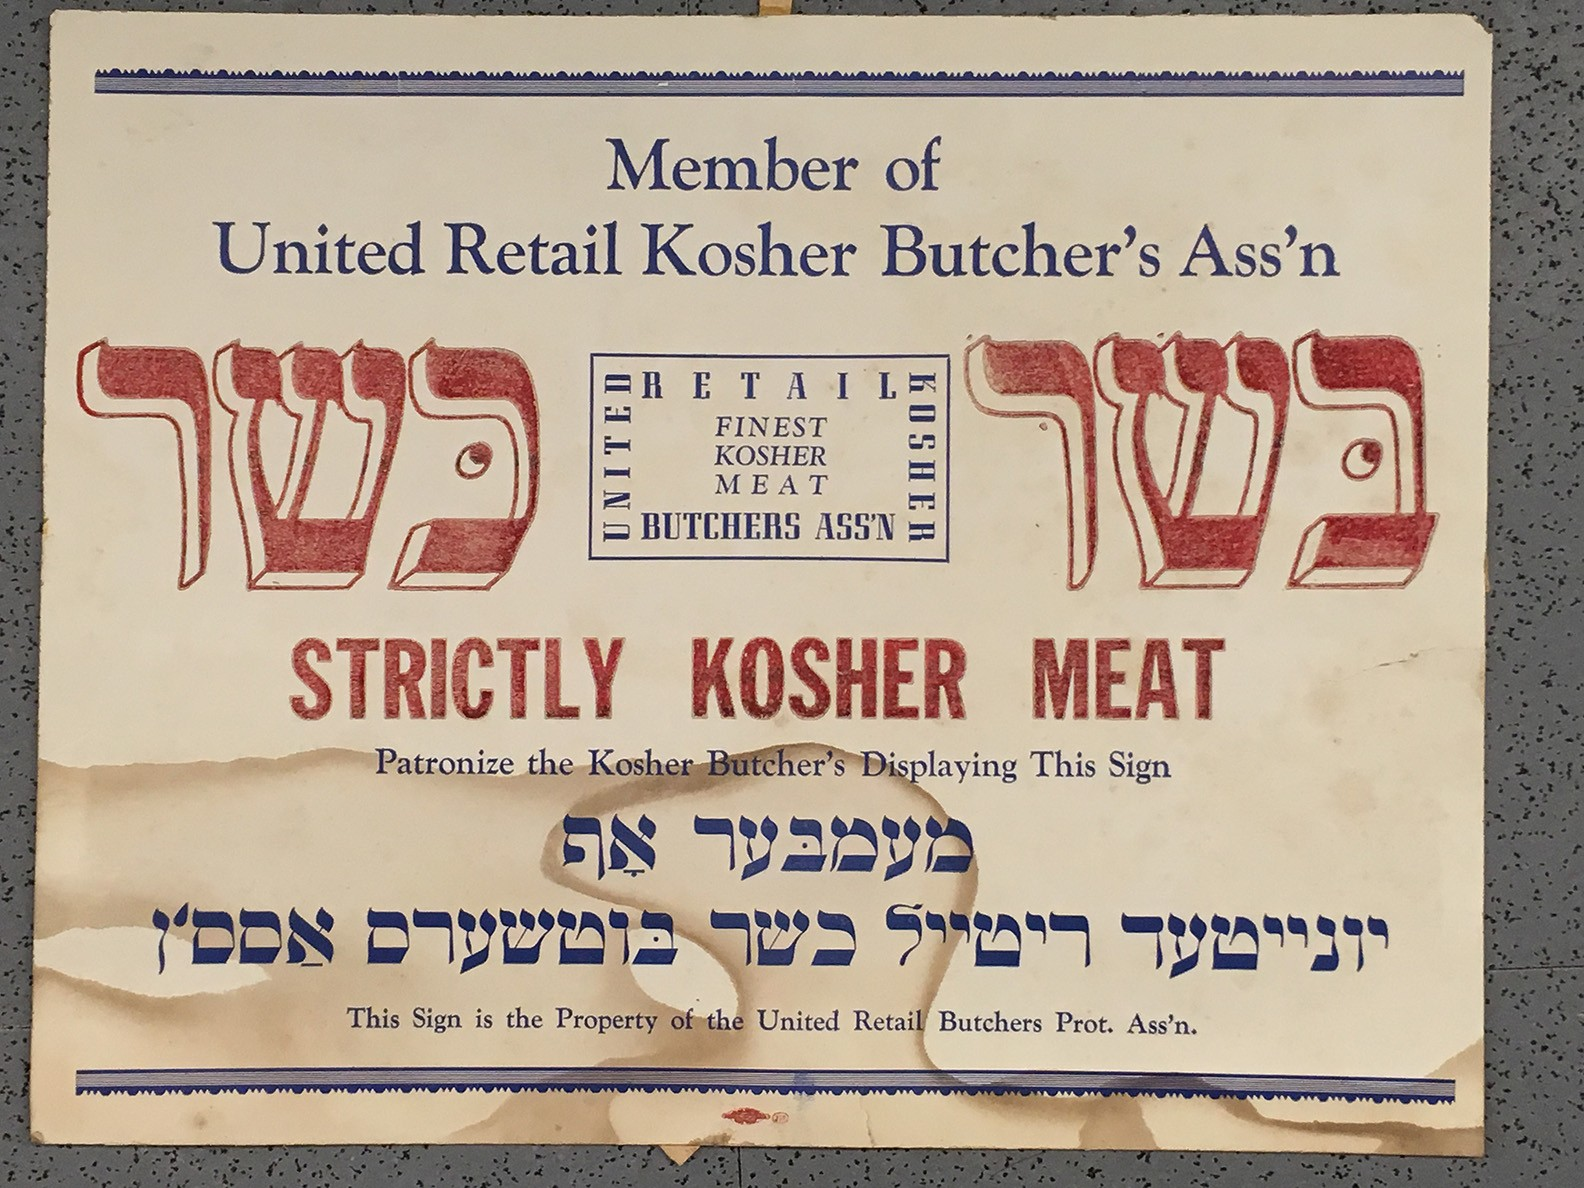 United Retail Kosher Butcher Association Member sign.